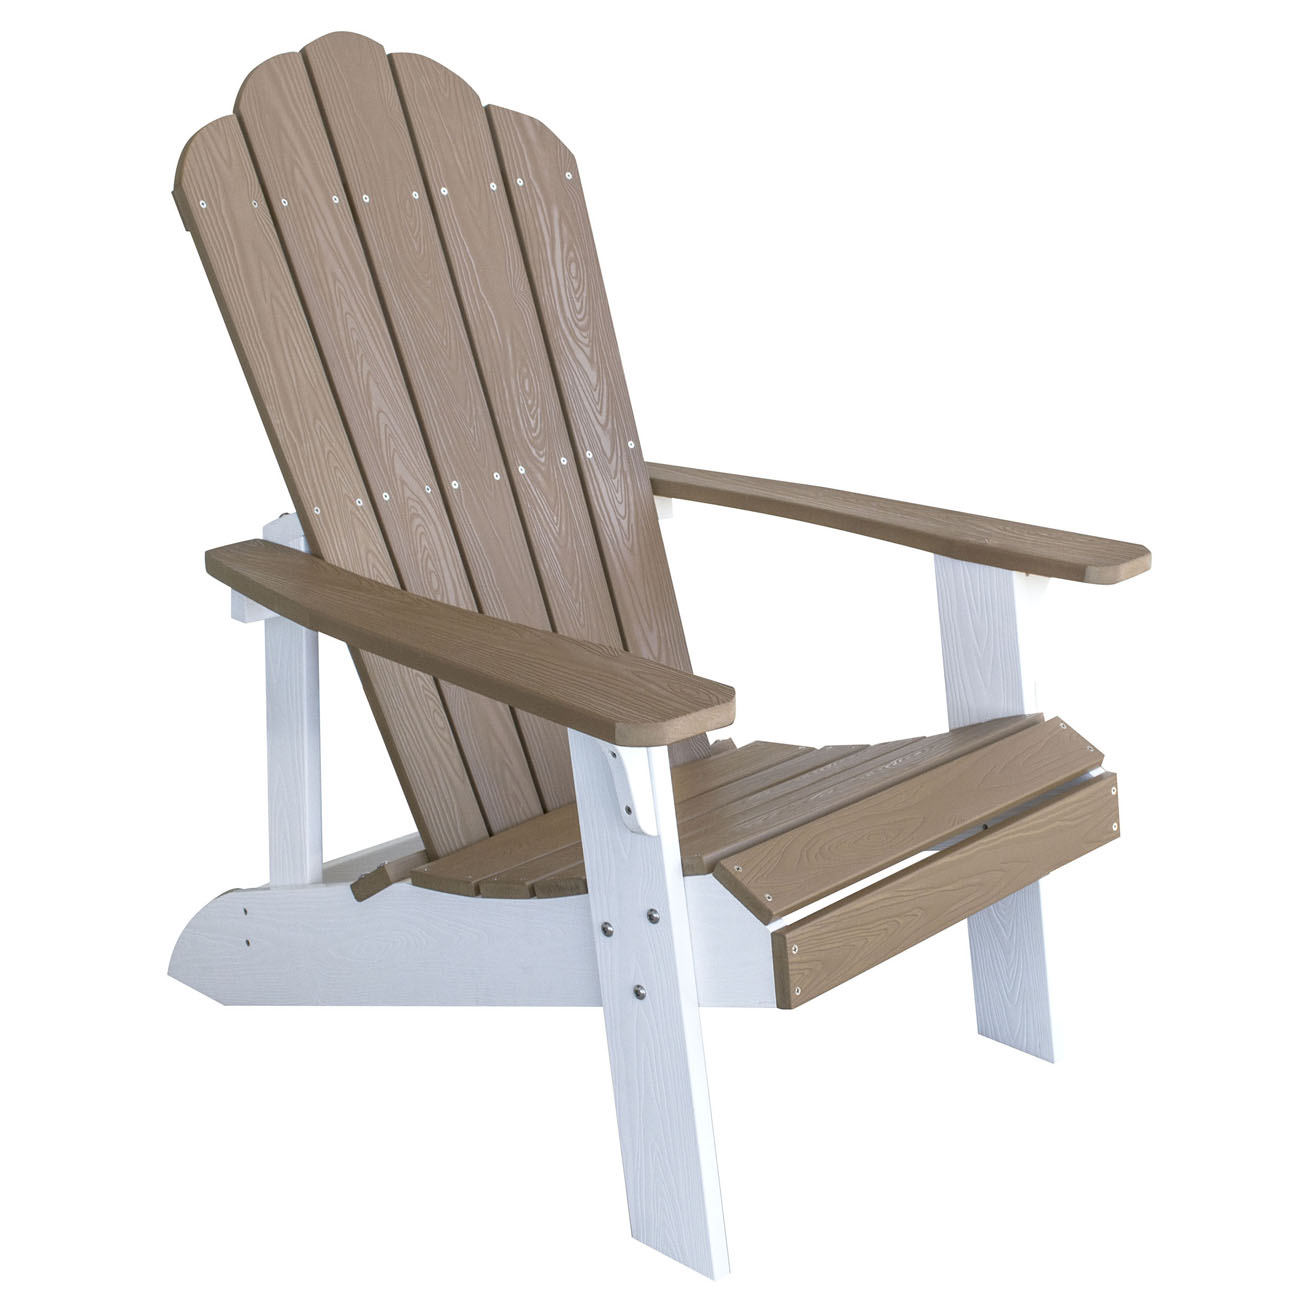 Outdoor Two Tone Adirondack Chair with Durable Simulated Wood Construction - Tan with White Accents